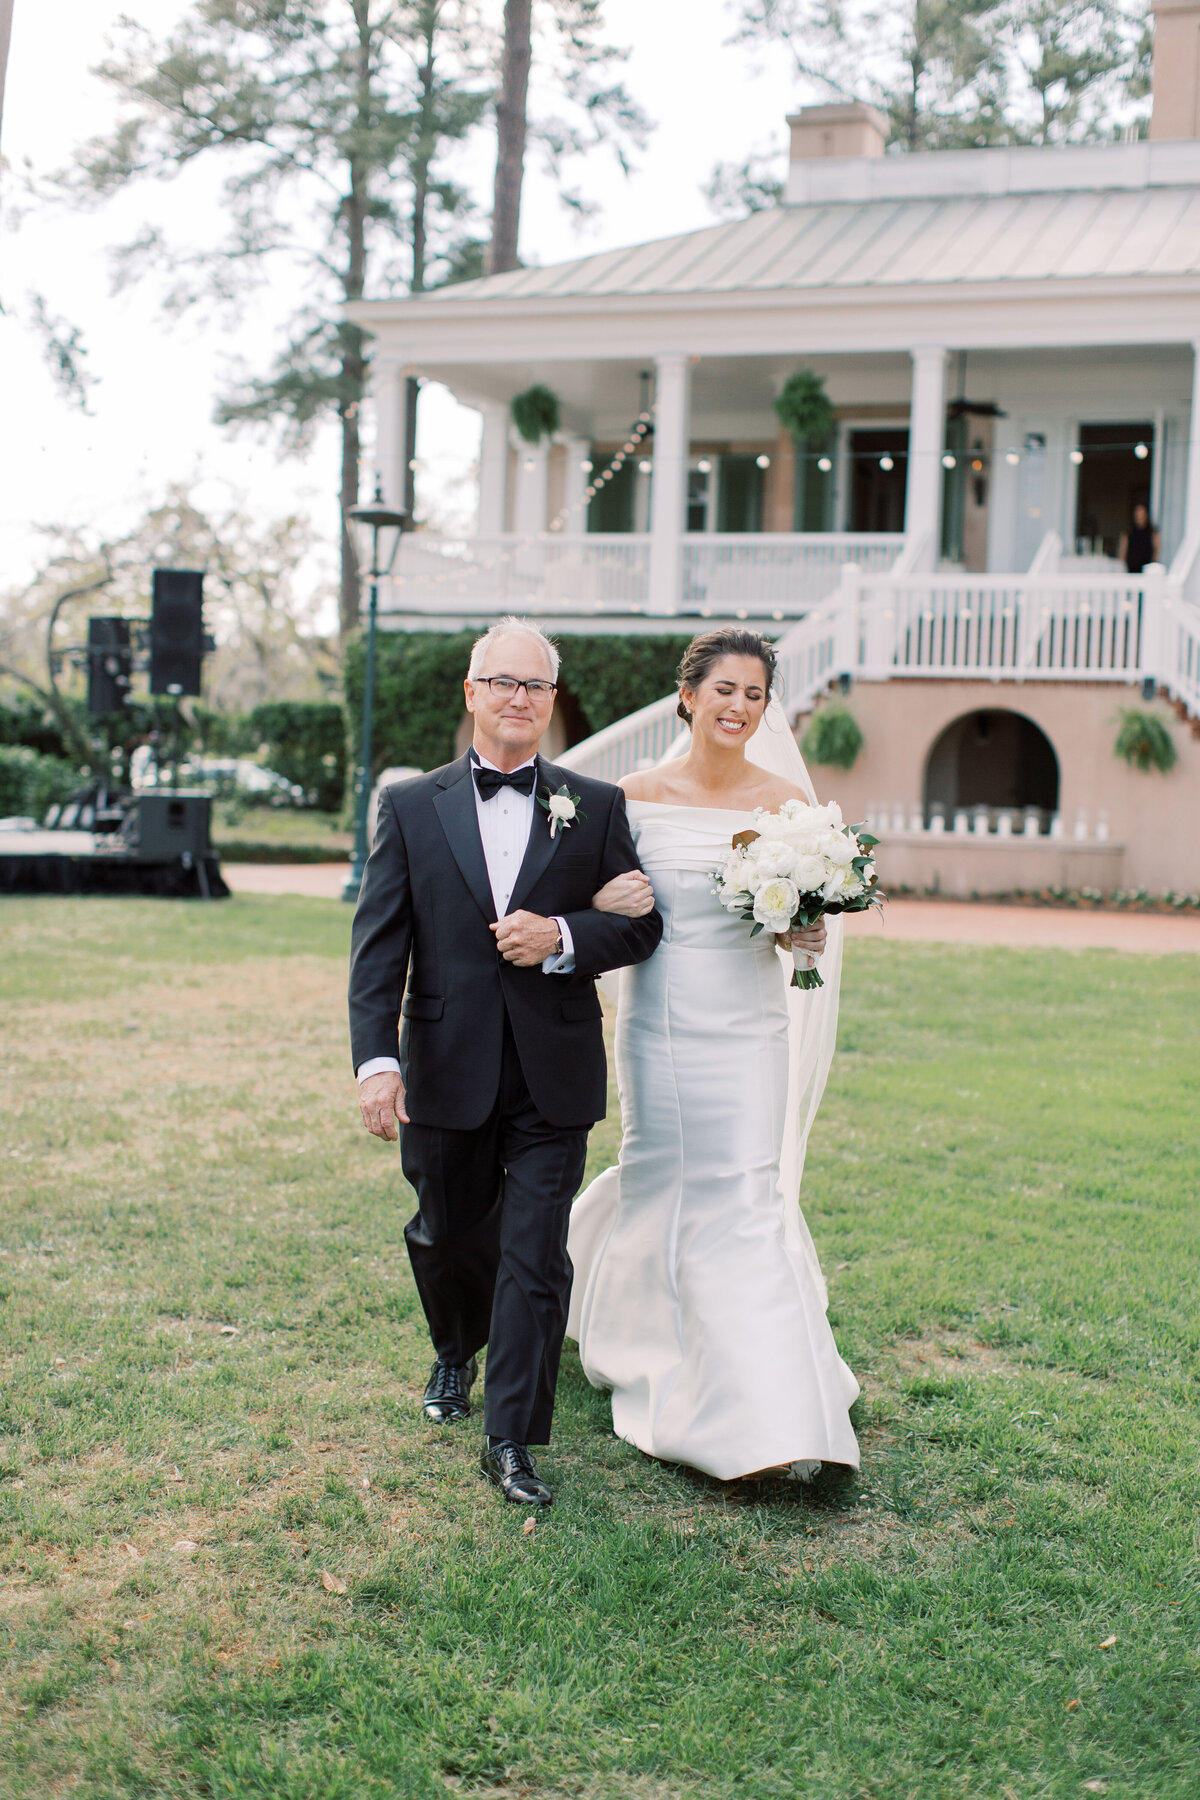 Powell_Oldfield_River_Club_Bluffton_South_Carolina_Beaufort_Savannah_Wedding_Jacksonville_Florida_Devon_Donnahoo_Photography_0520